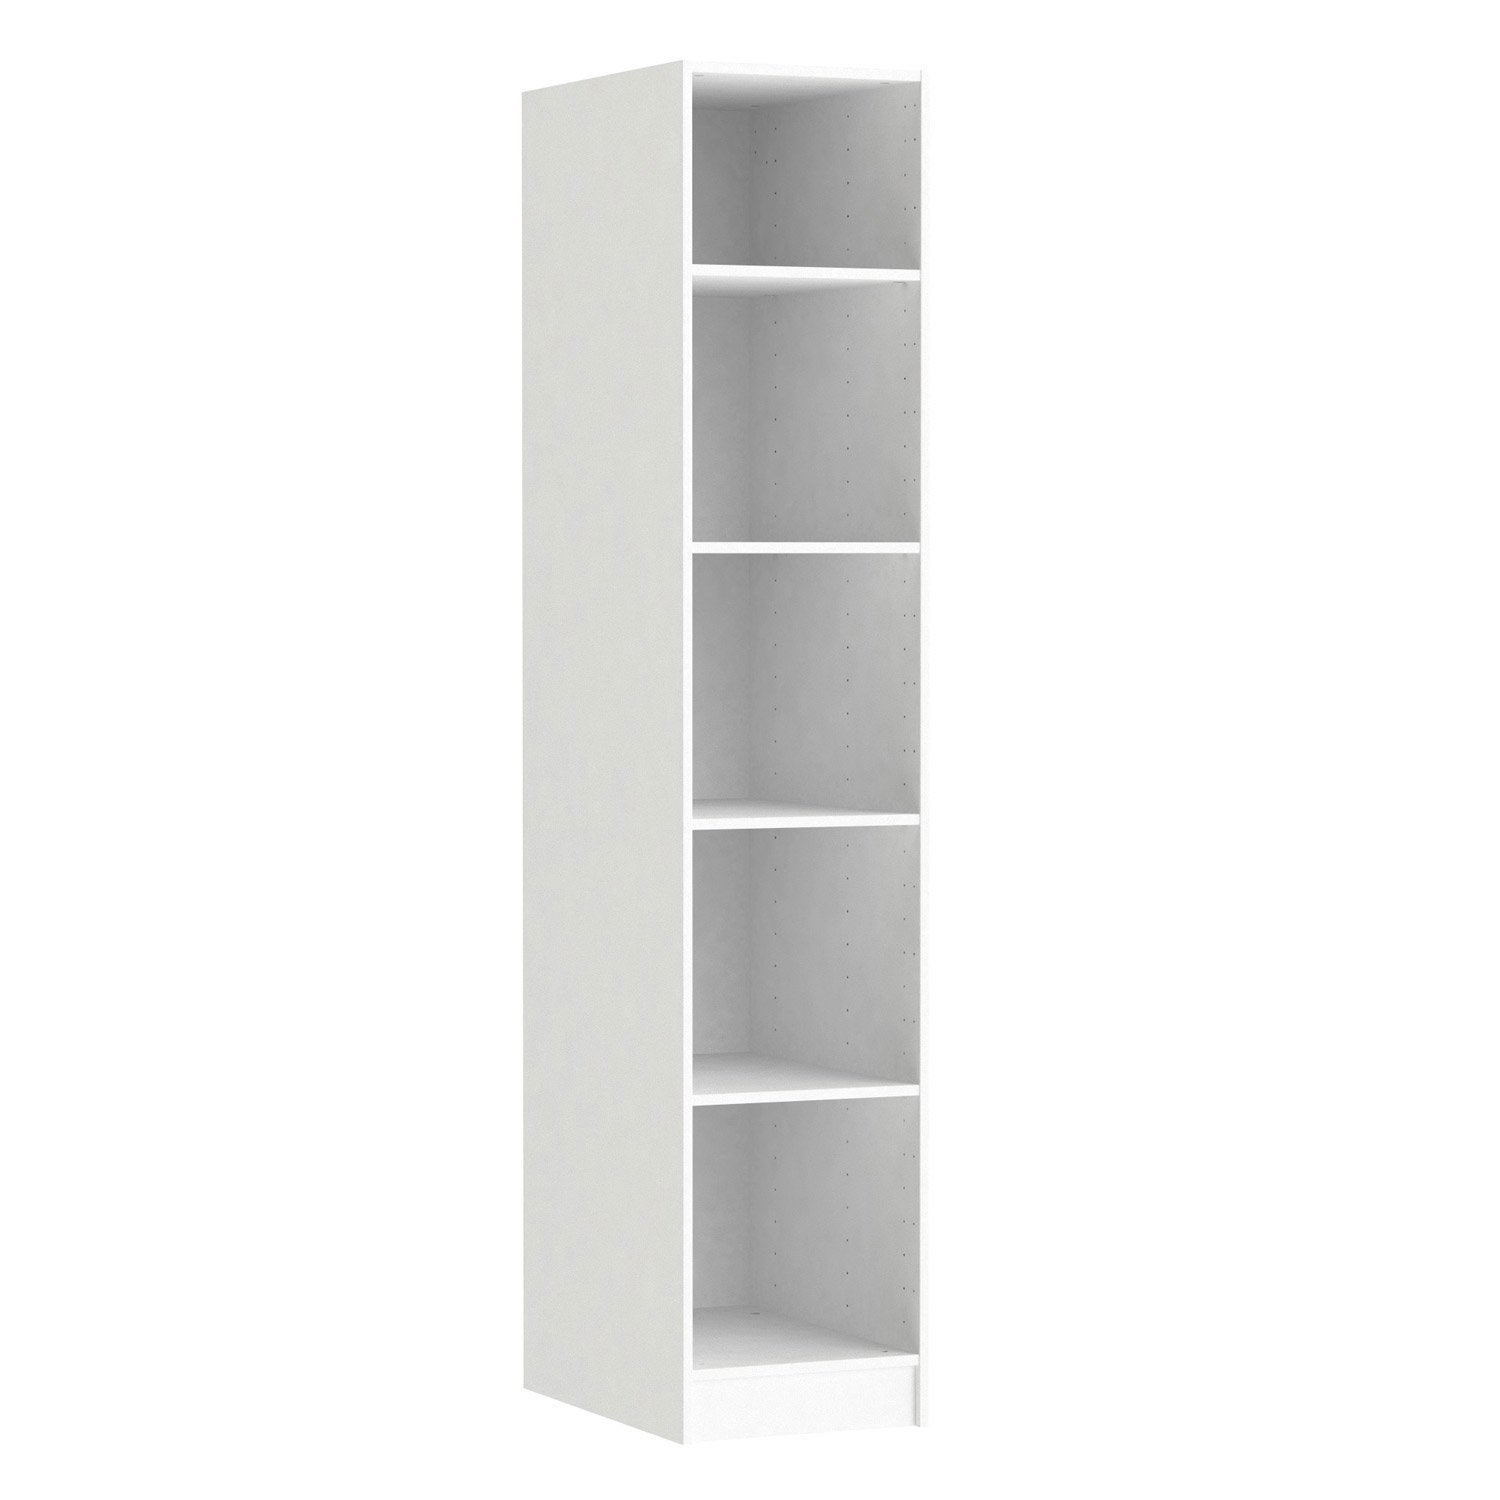 Caisson spaceo home 200 x 40 x 60 cm blanc leroy merlin for Porte 60 x 60